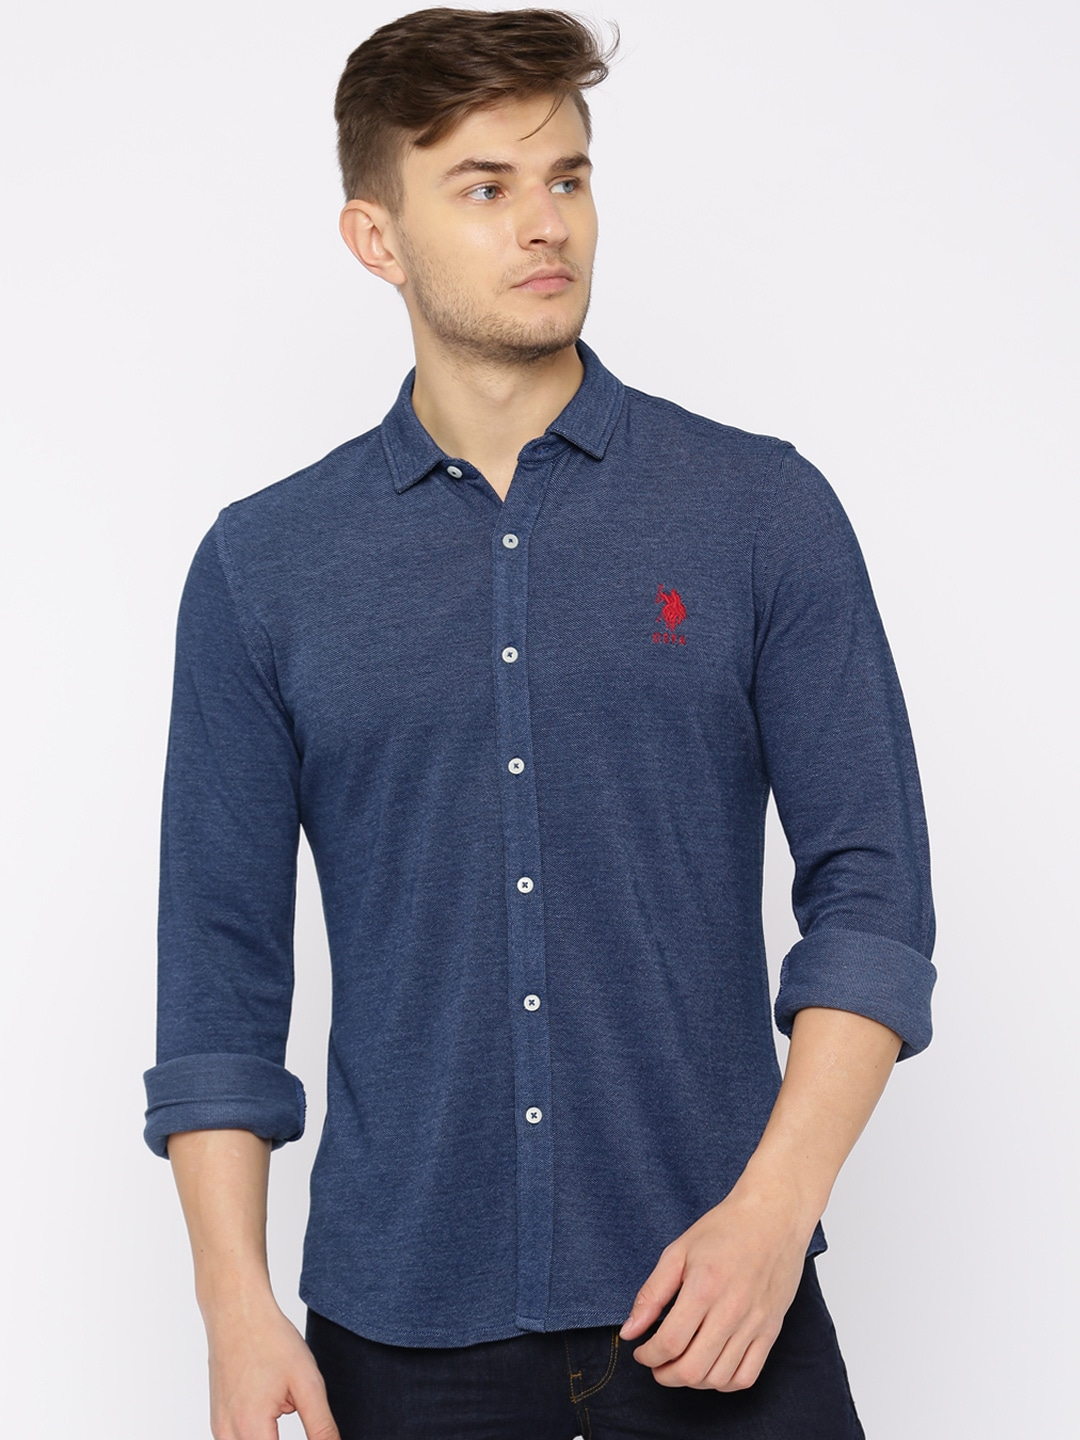 U.S. Polo Assn. Men Navy Regular Fit Solid Casual Shirt image